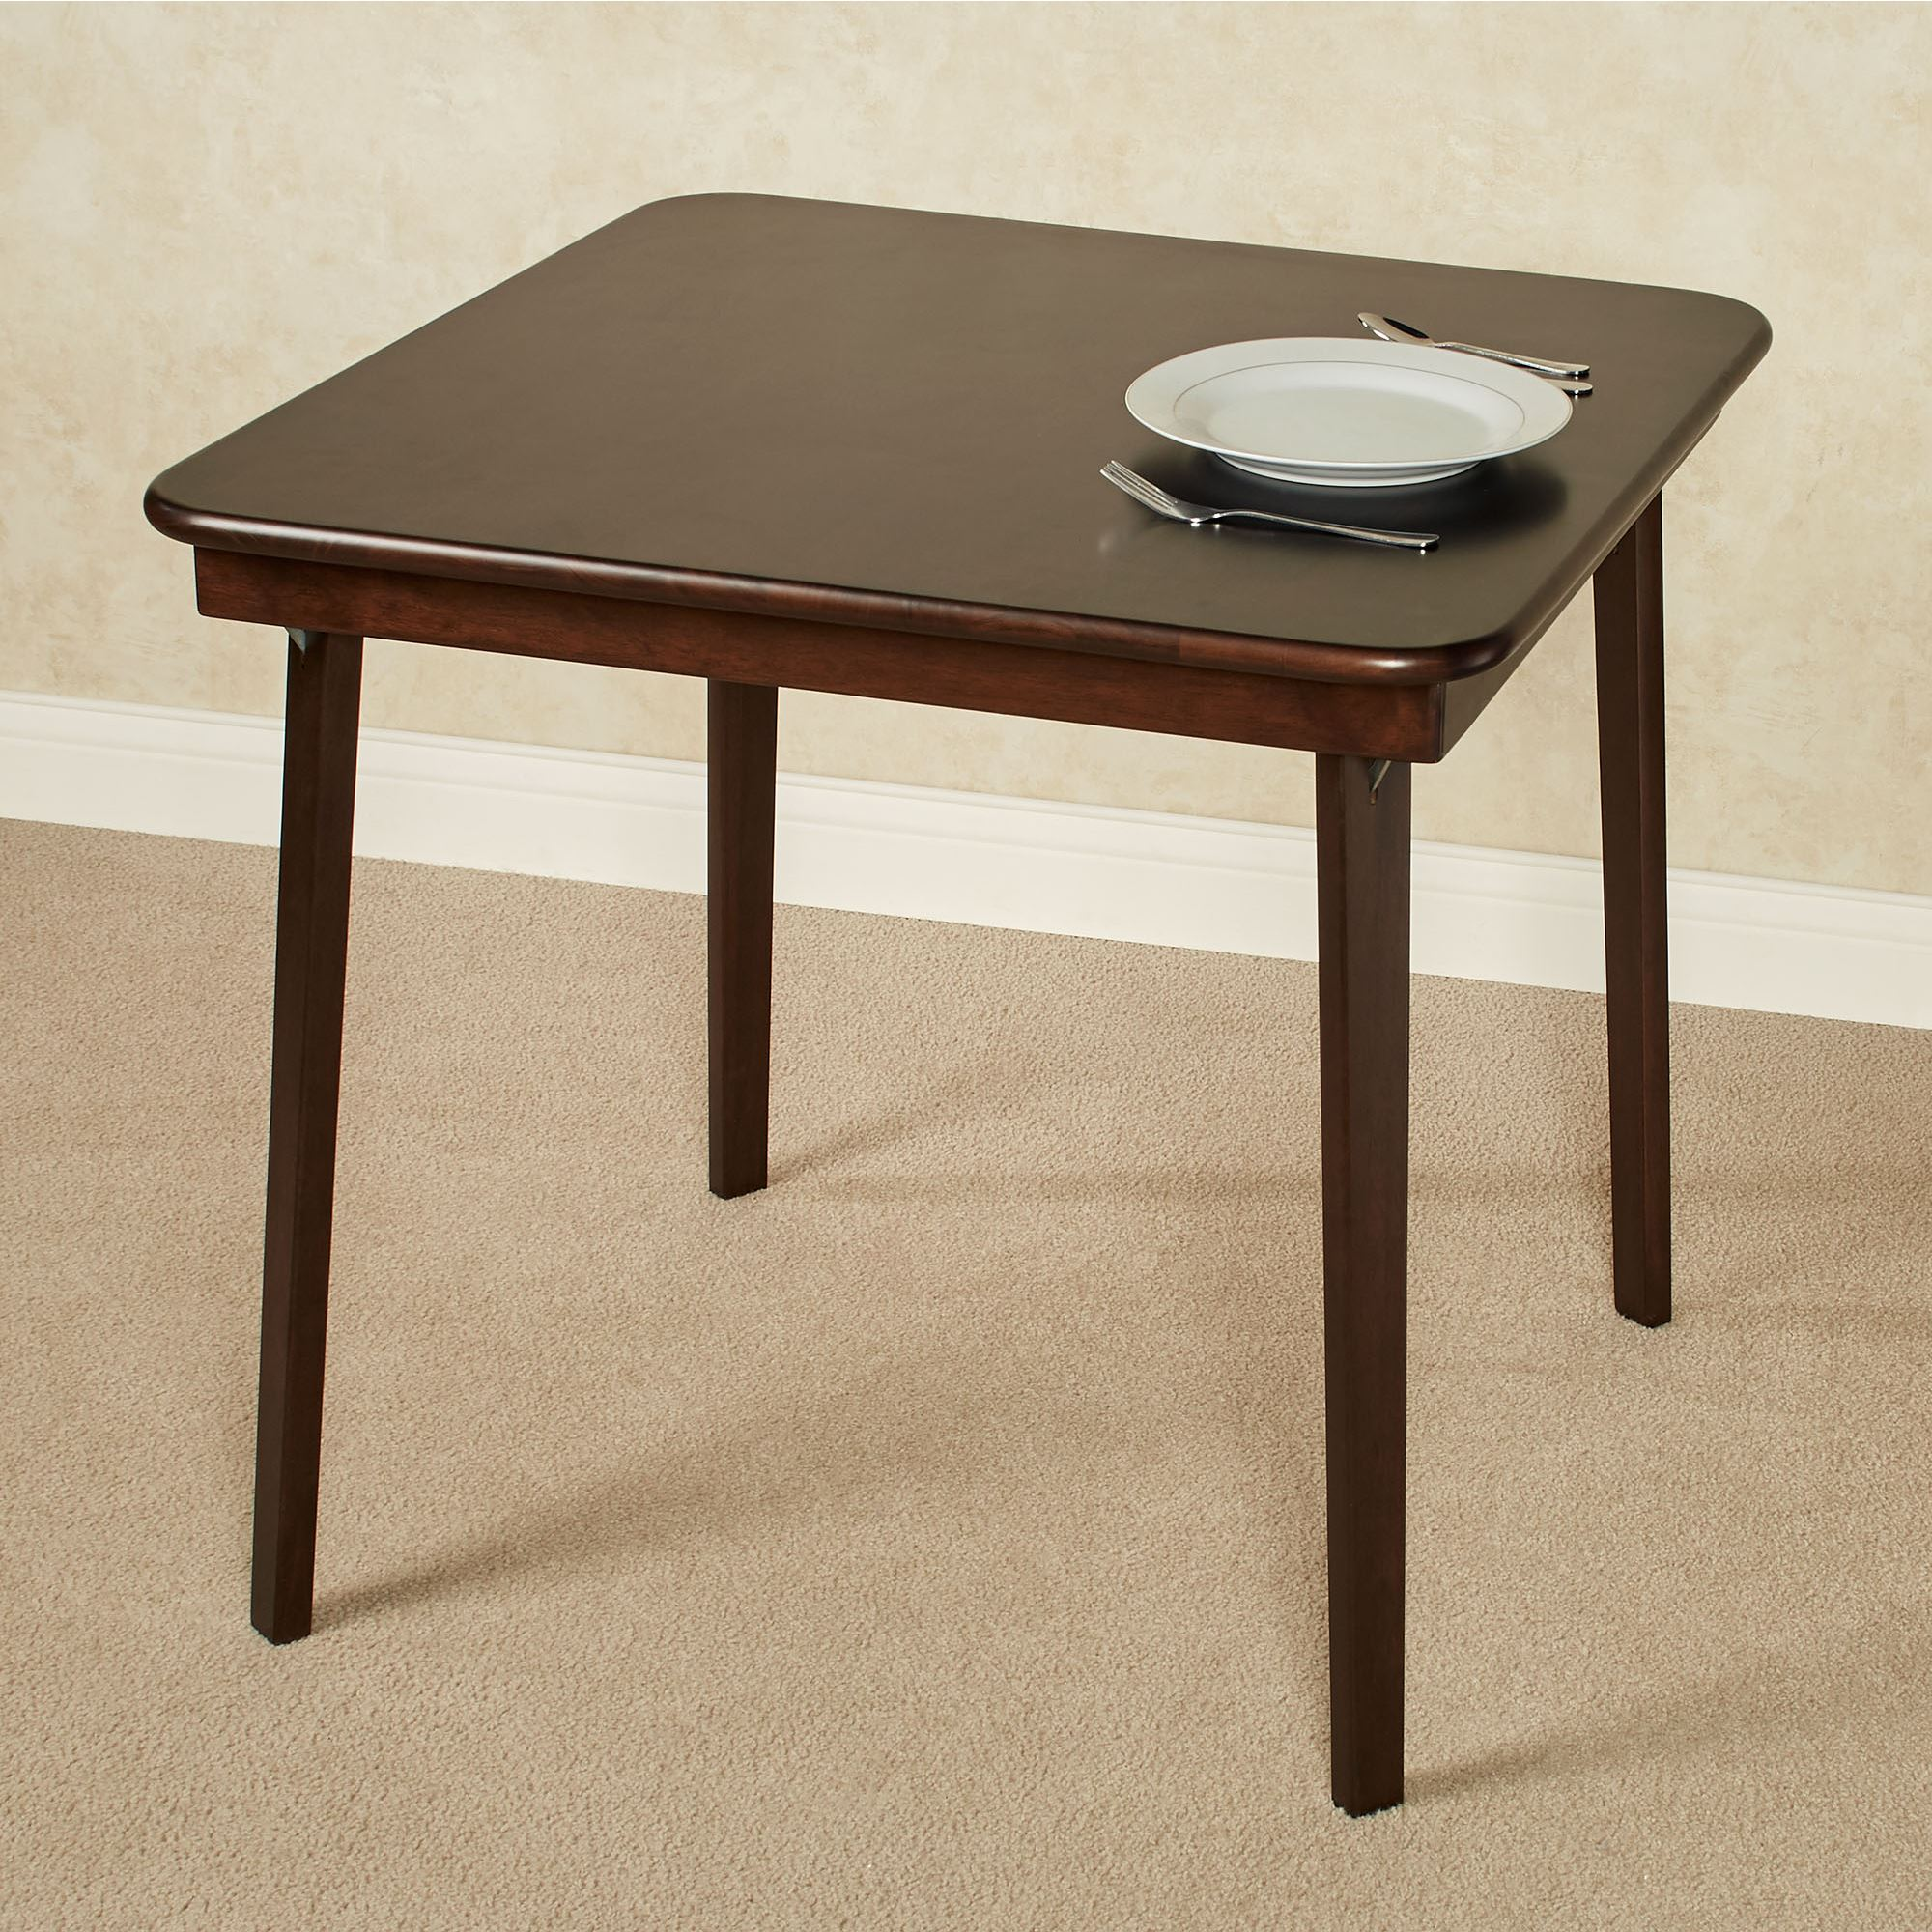 Espresso Straight Edge Folding Card Table